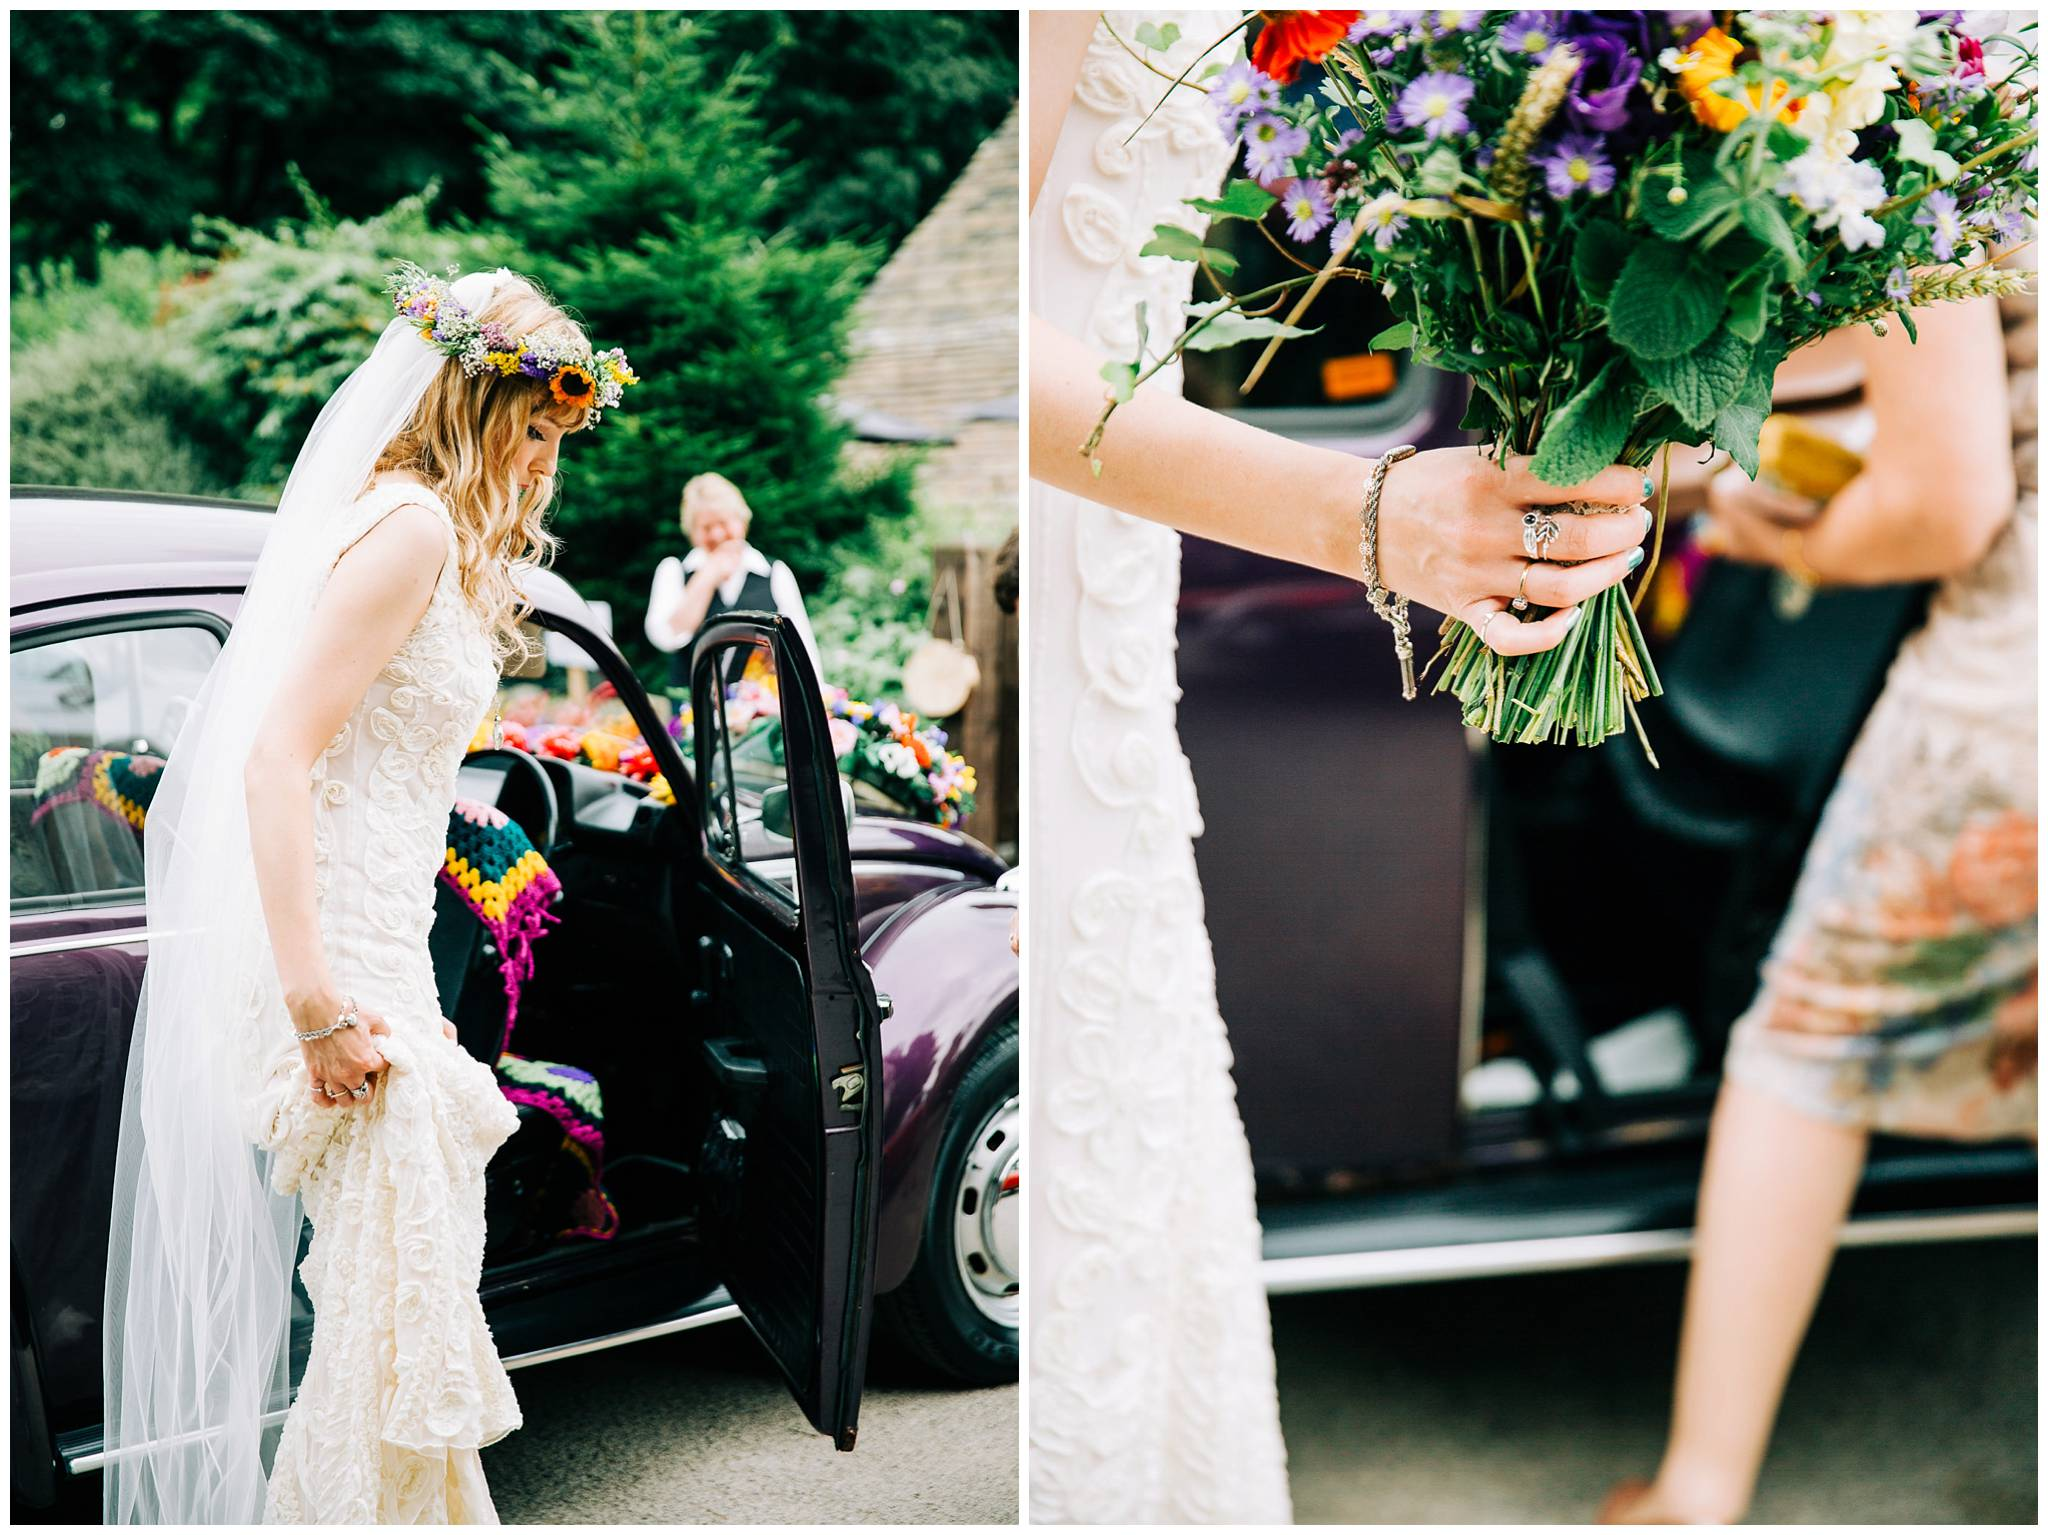 bride straightening dress and holding bouquet